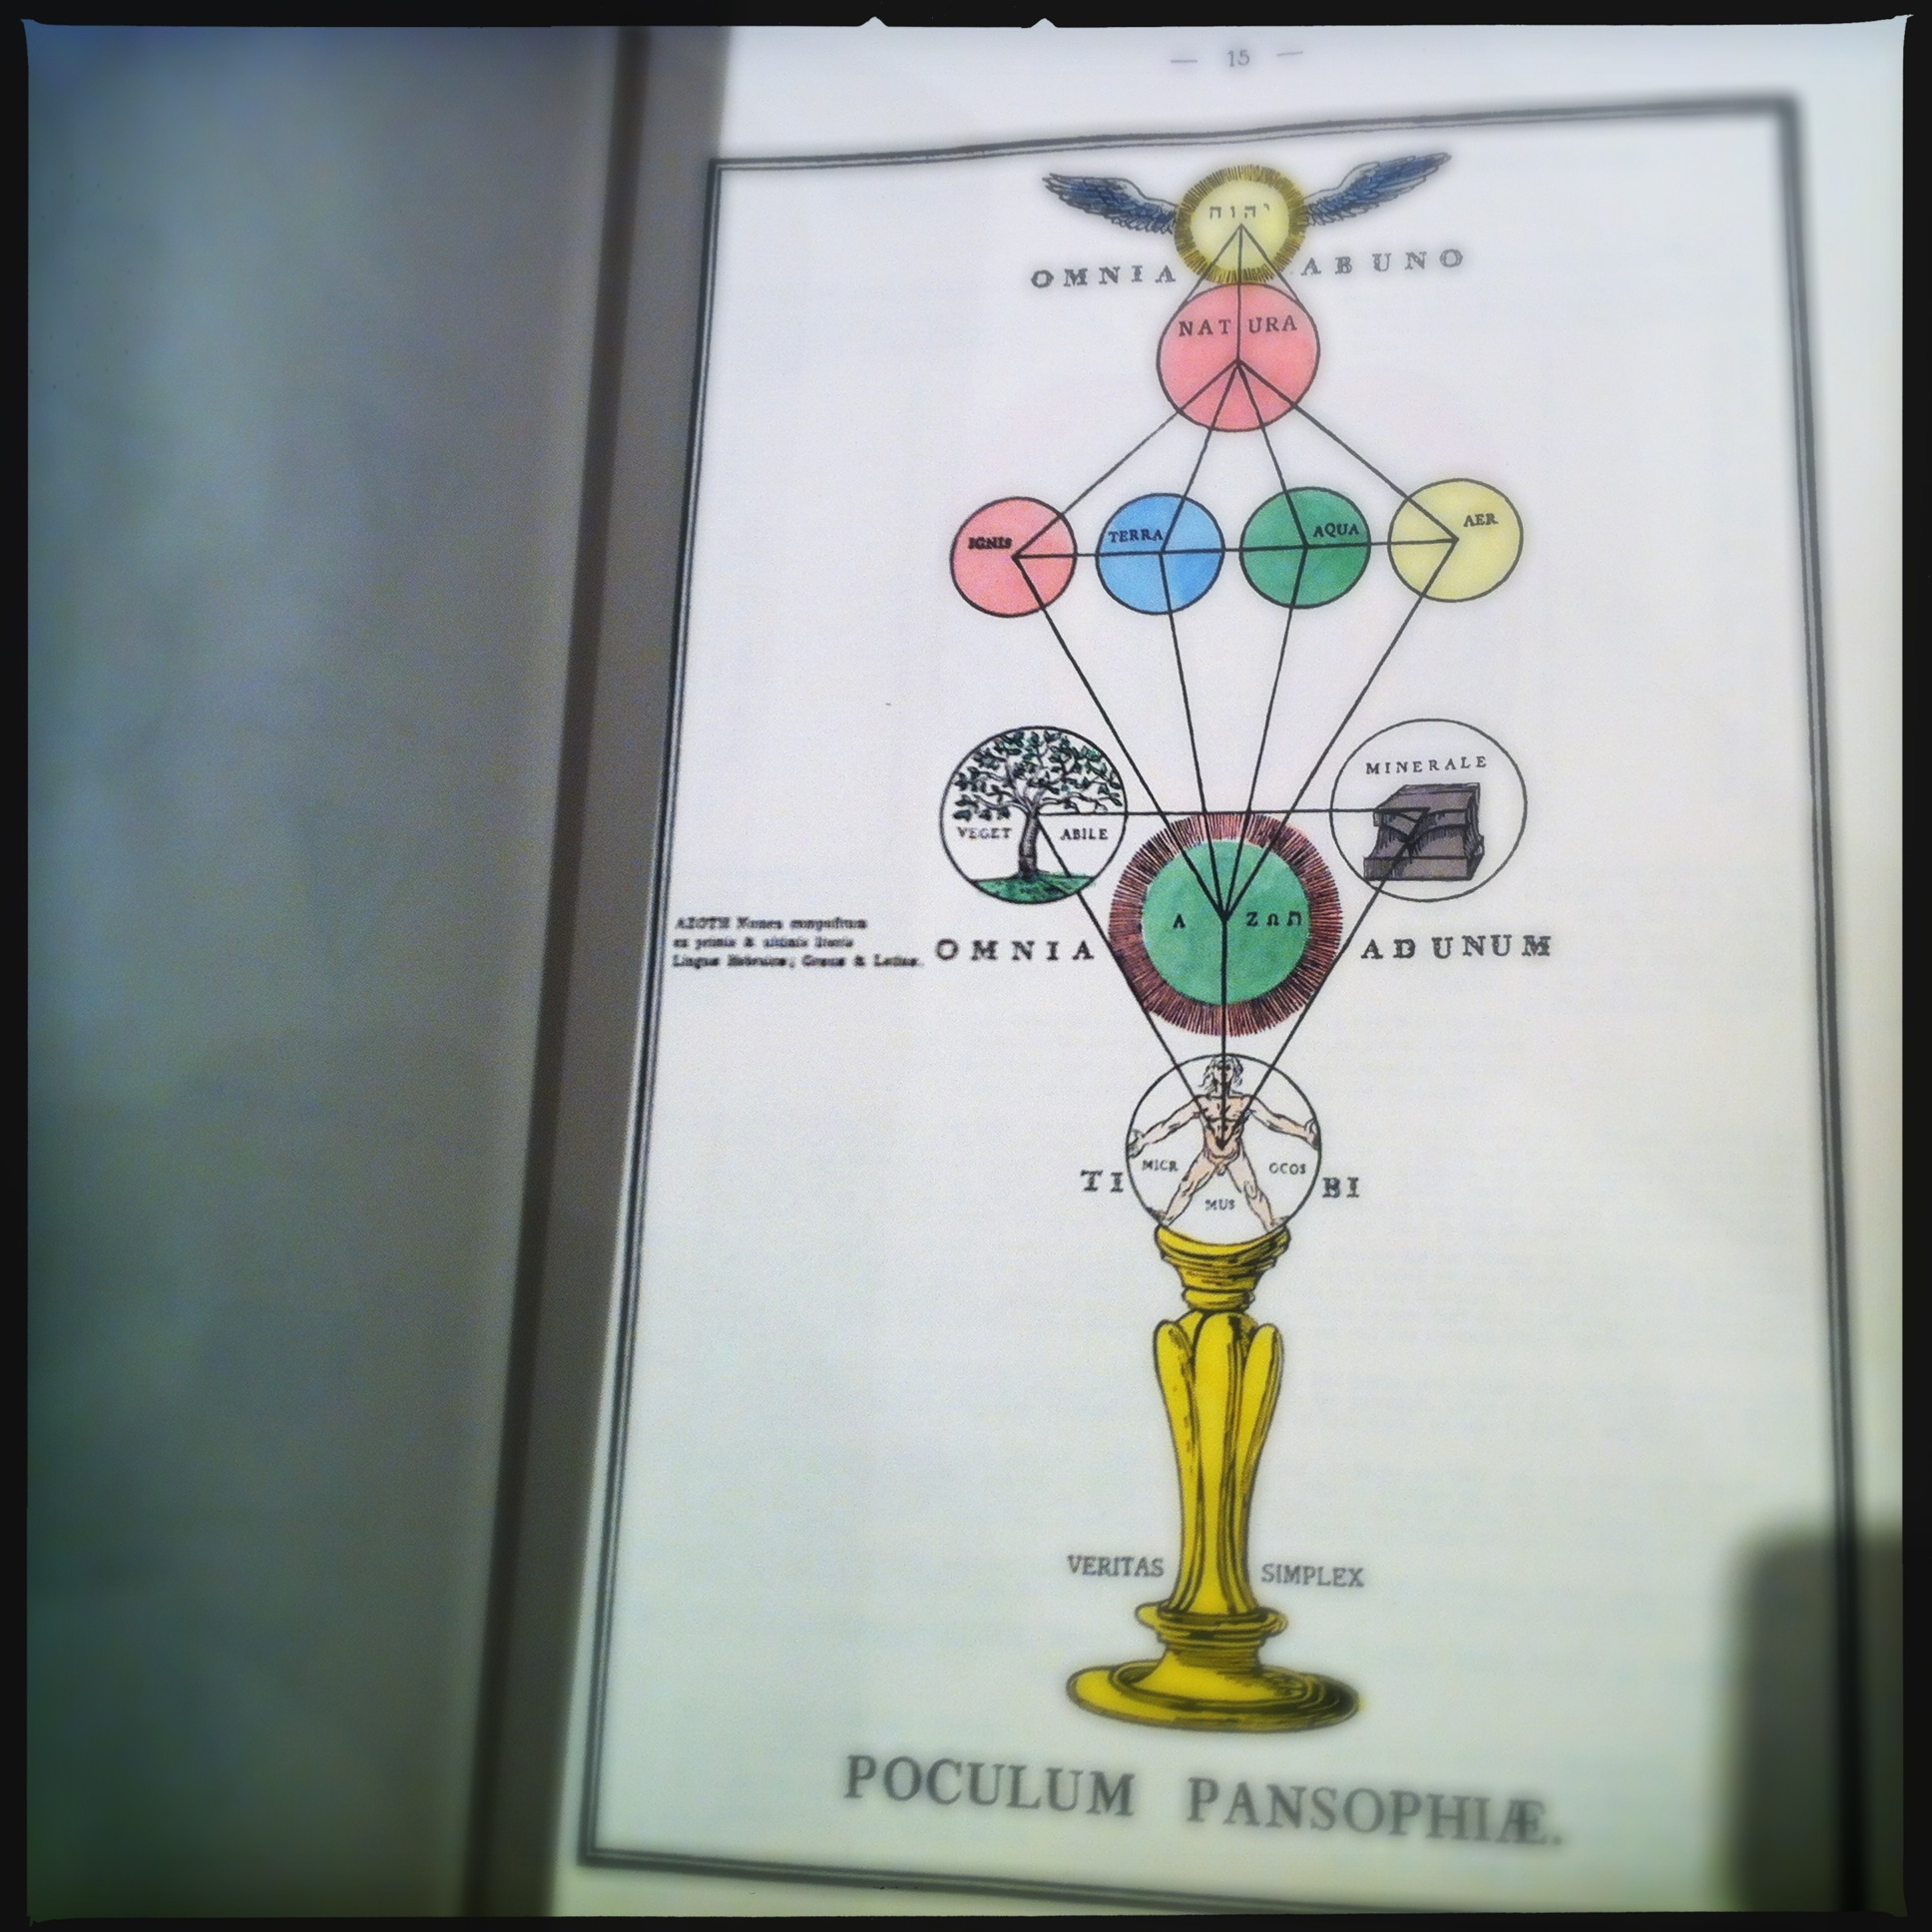 The constitution of man according to the Rosicrucians: 'True Will' wasn't a concept know to them. Rather they understood humans as a magical chalice filled with divine forces of nature itself.